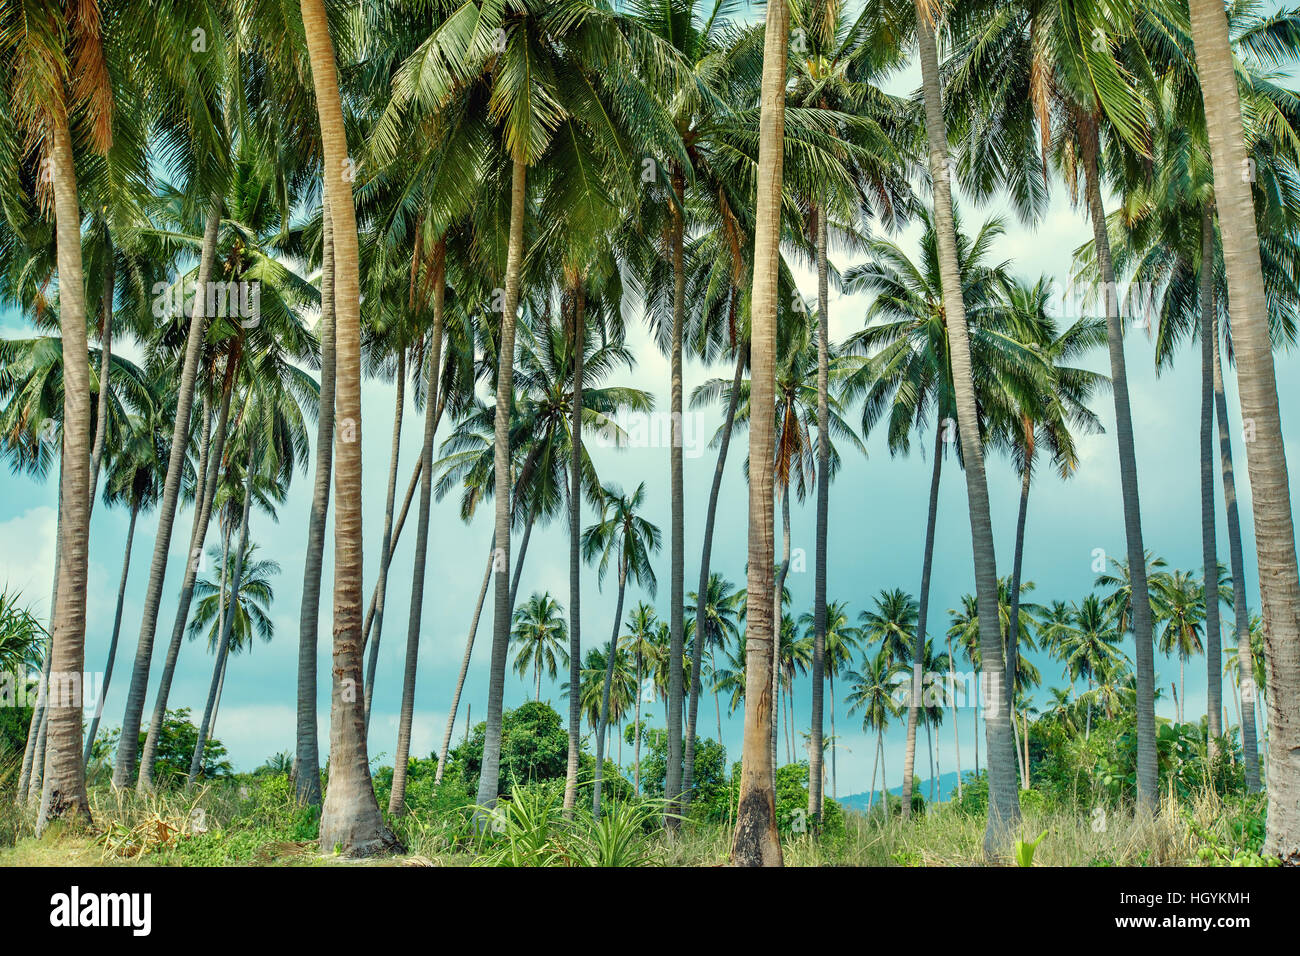 Coconut palms on tropical beach in Koh Samui, Thailand - Stock Image